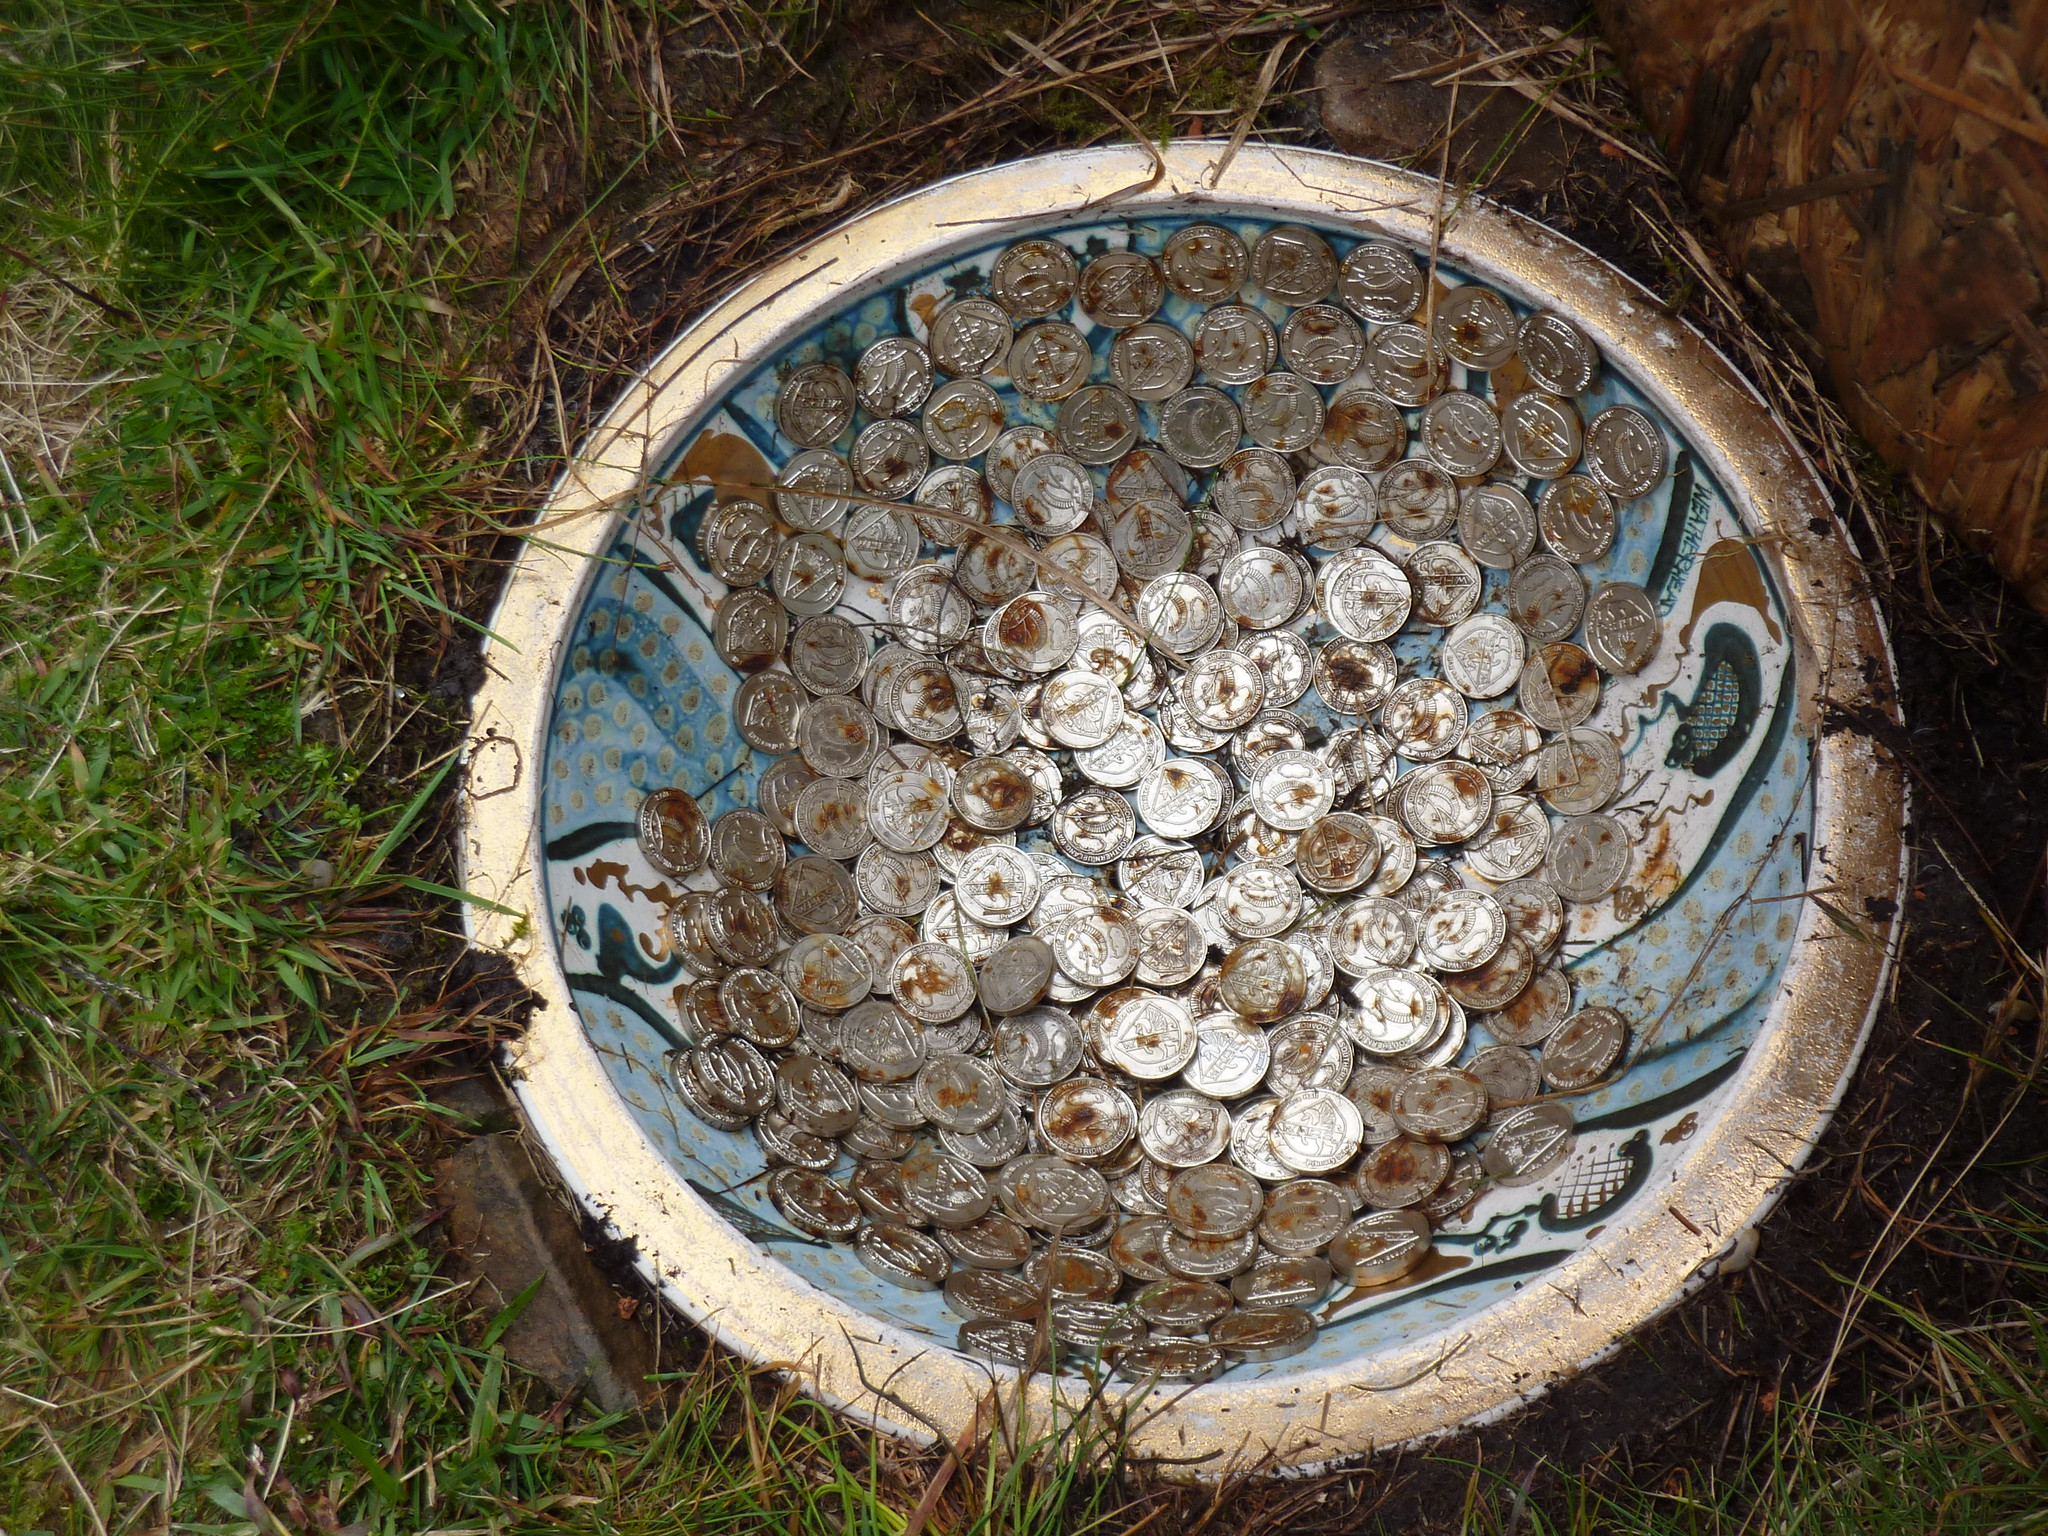 A nice pottery bowl full of rusting coins.